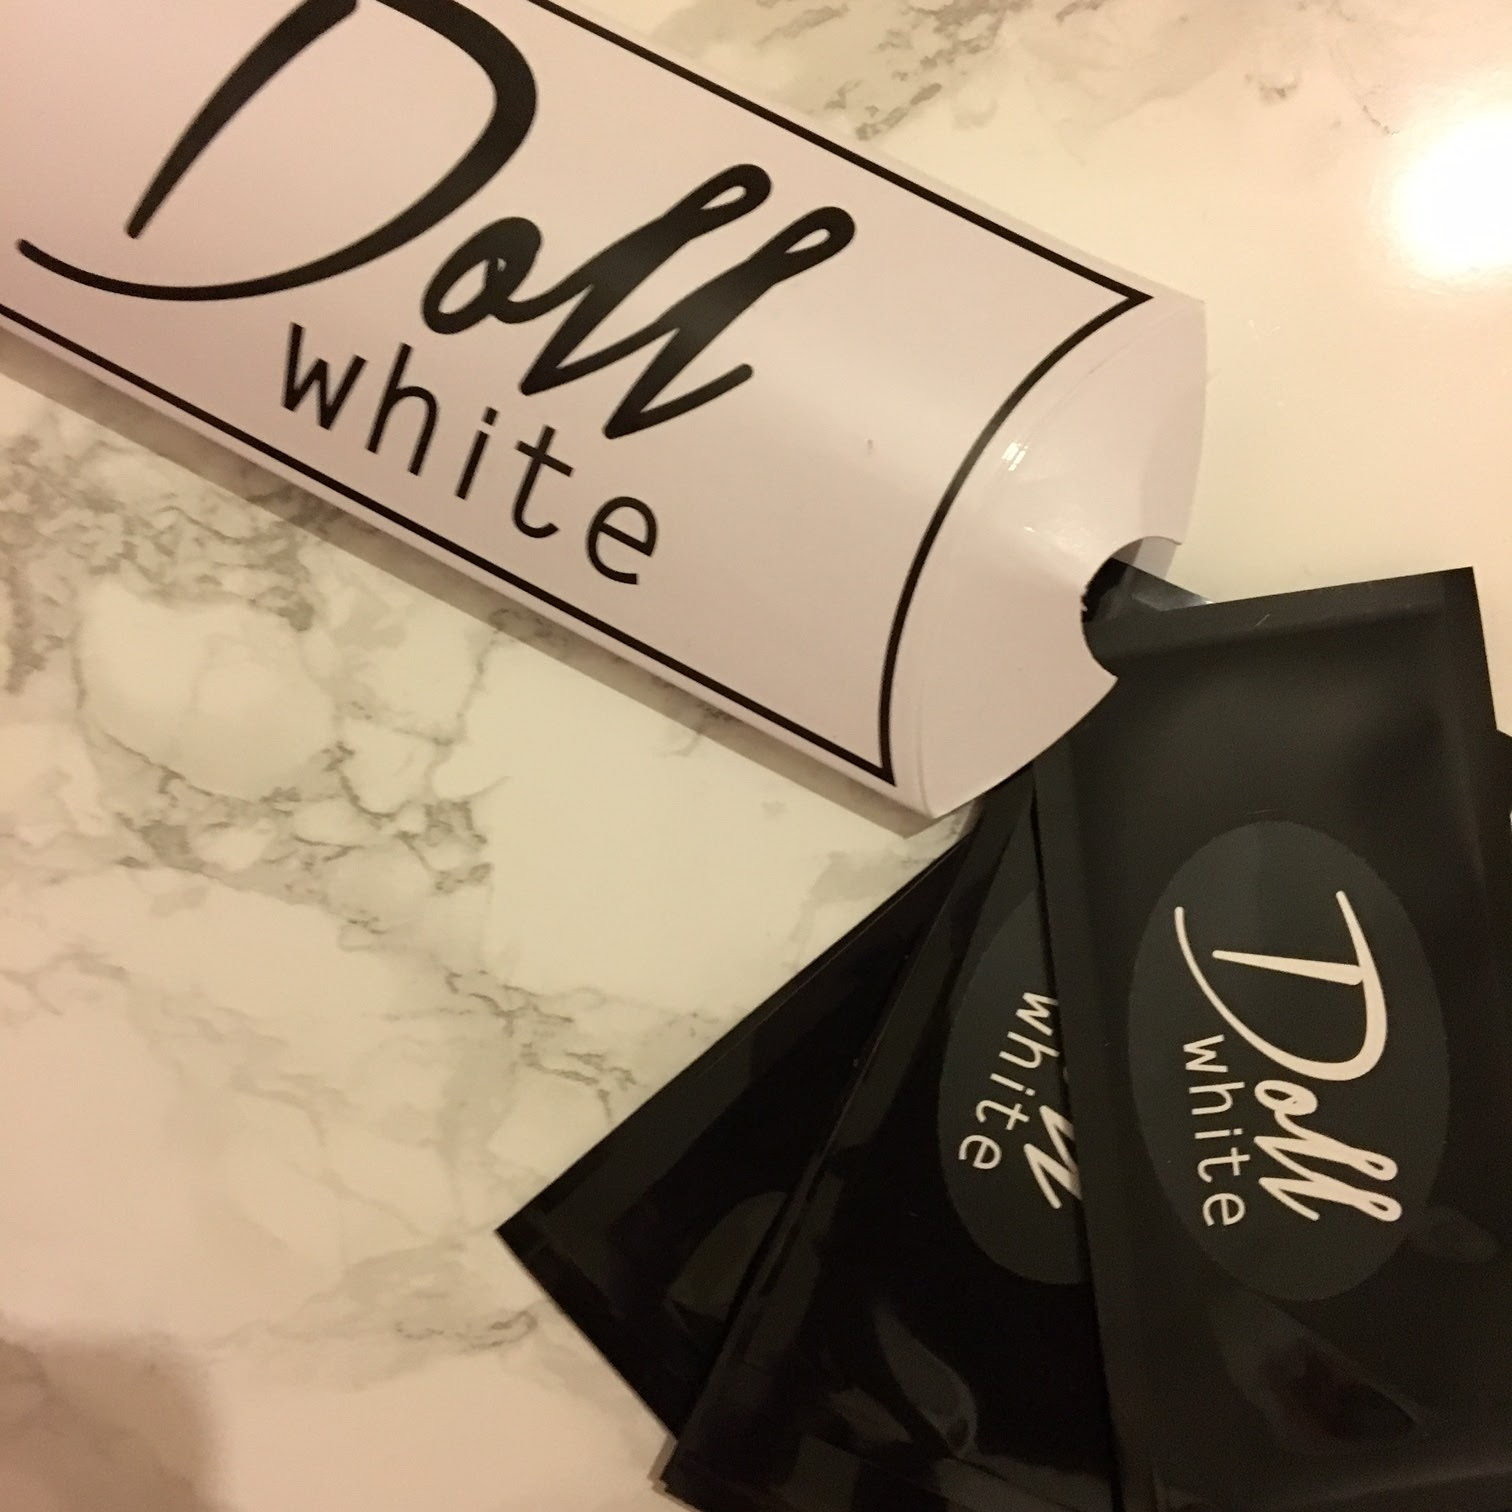 Doll White Teeth - Non Peroxide Teeth Whitening Solution